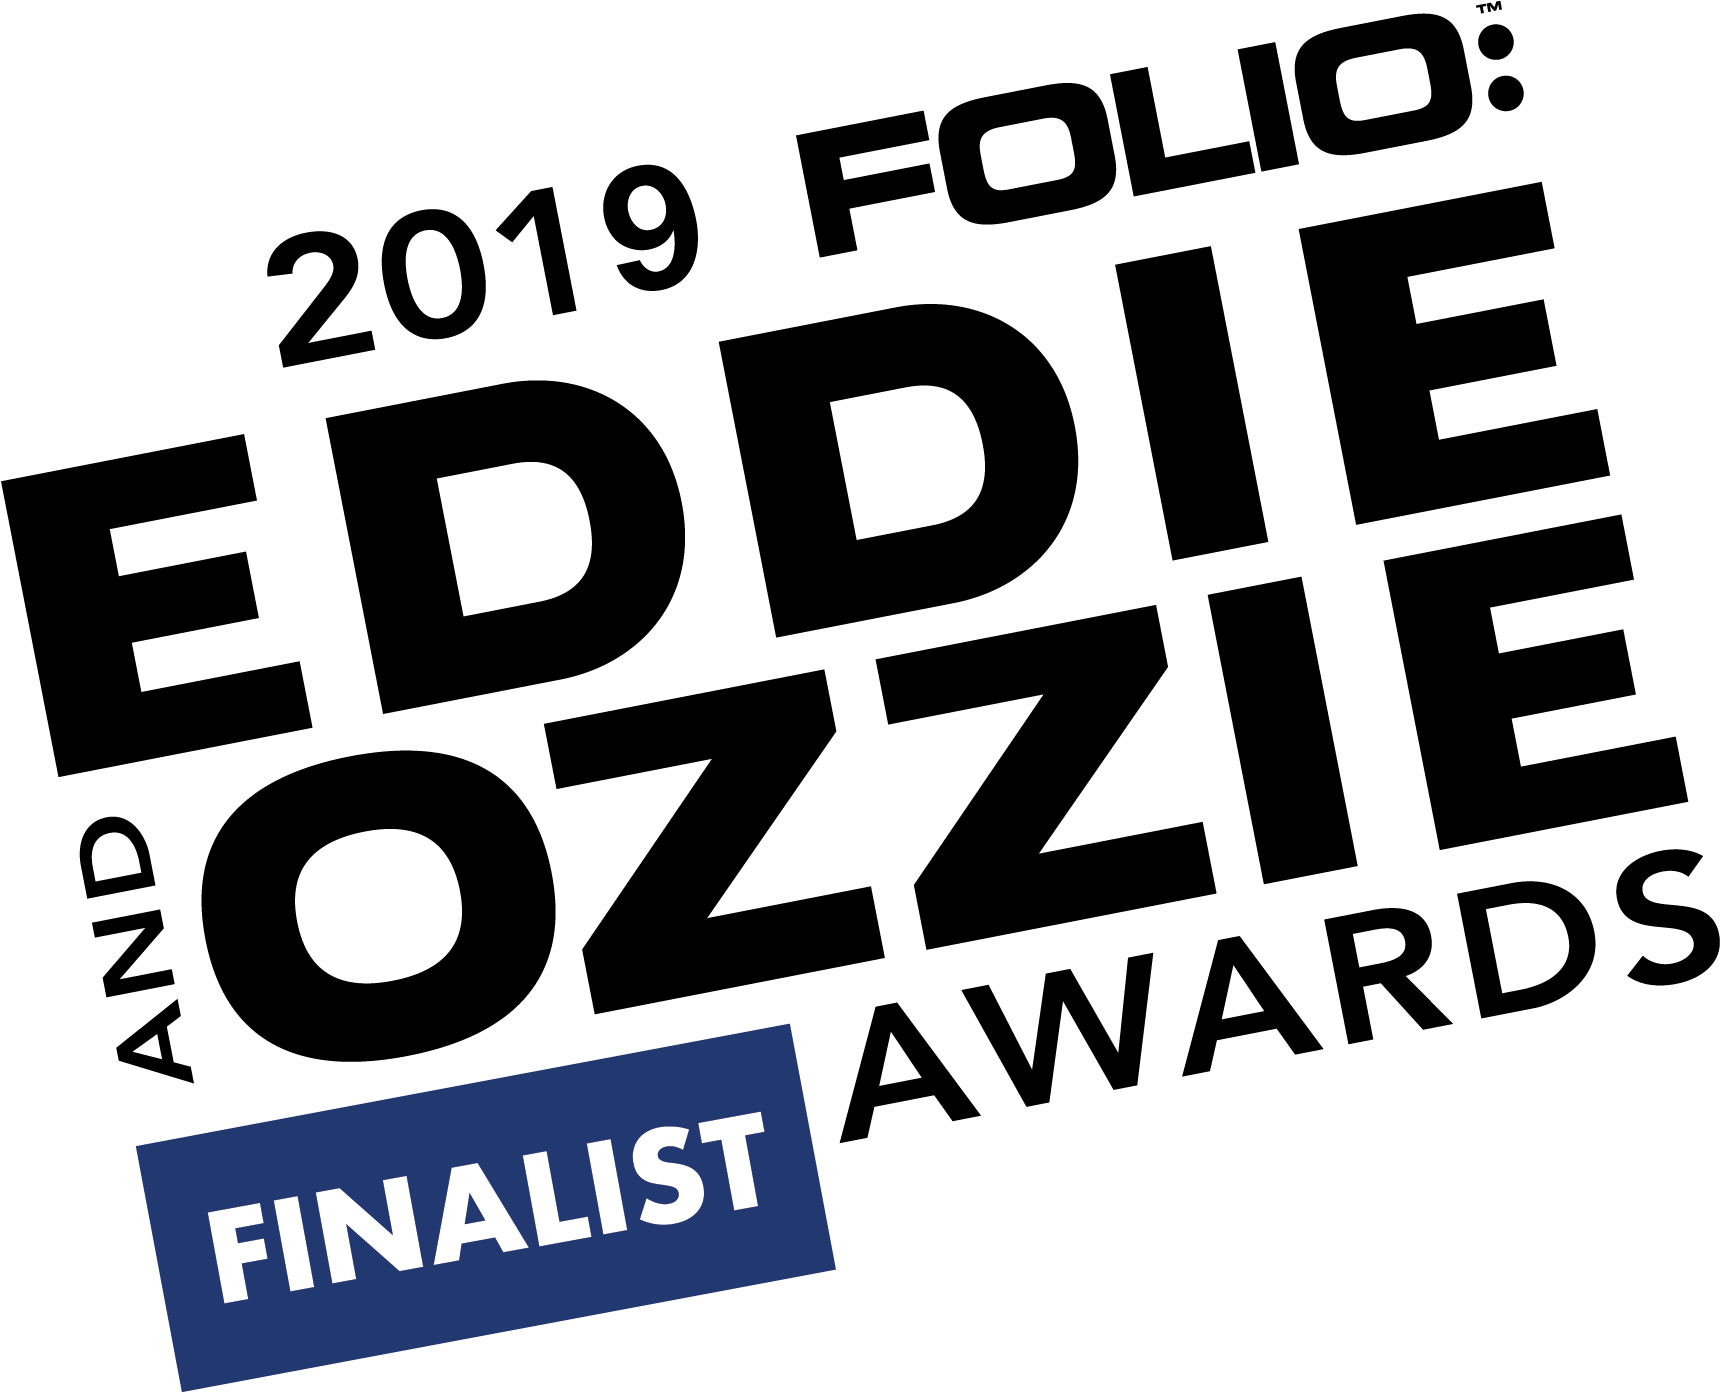 2019 Folio: Eddie and Ozzie Awards Finalist logo